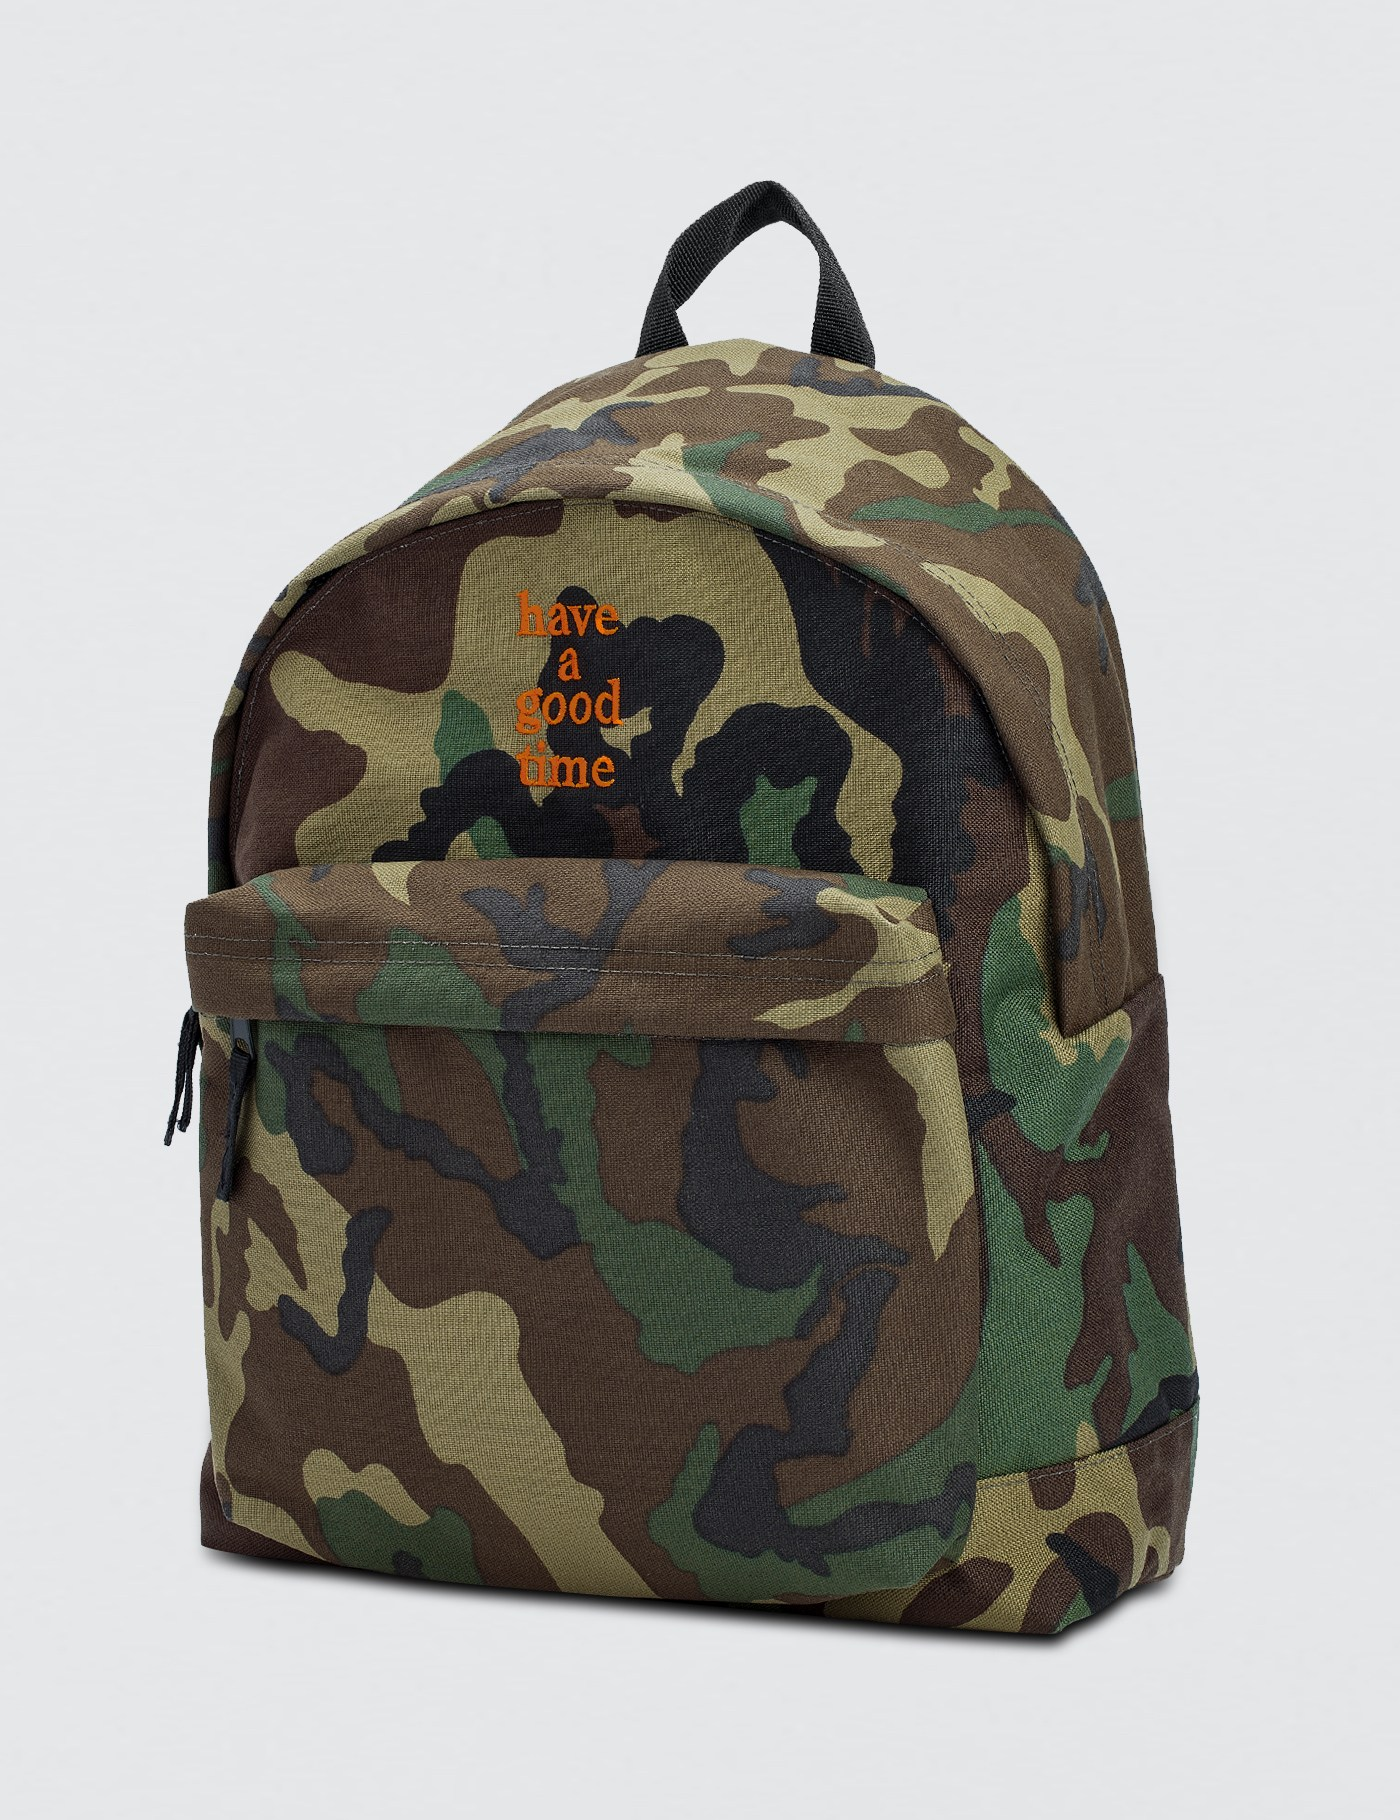 6eb9c0696a Buy Original have a good time Logo Backpack at Indonesia